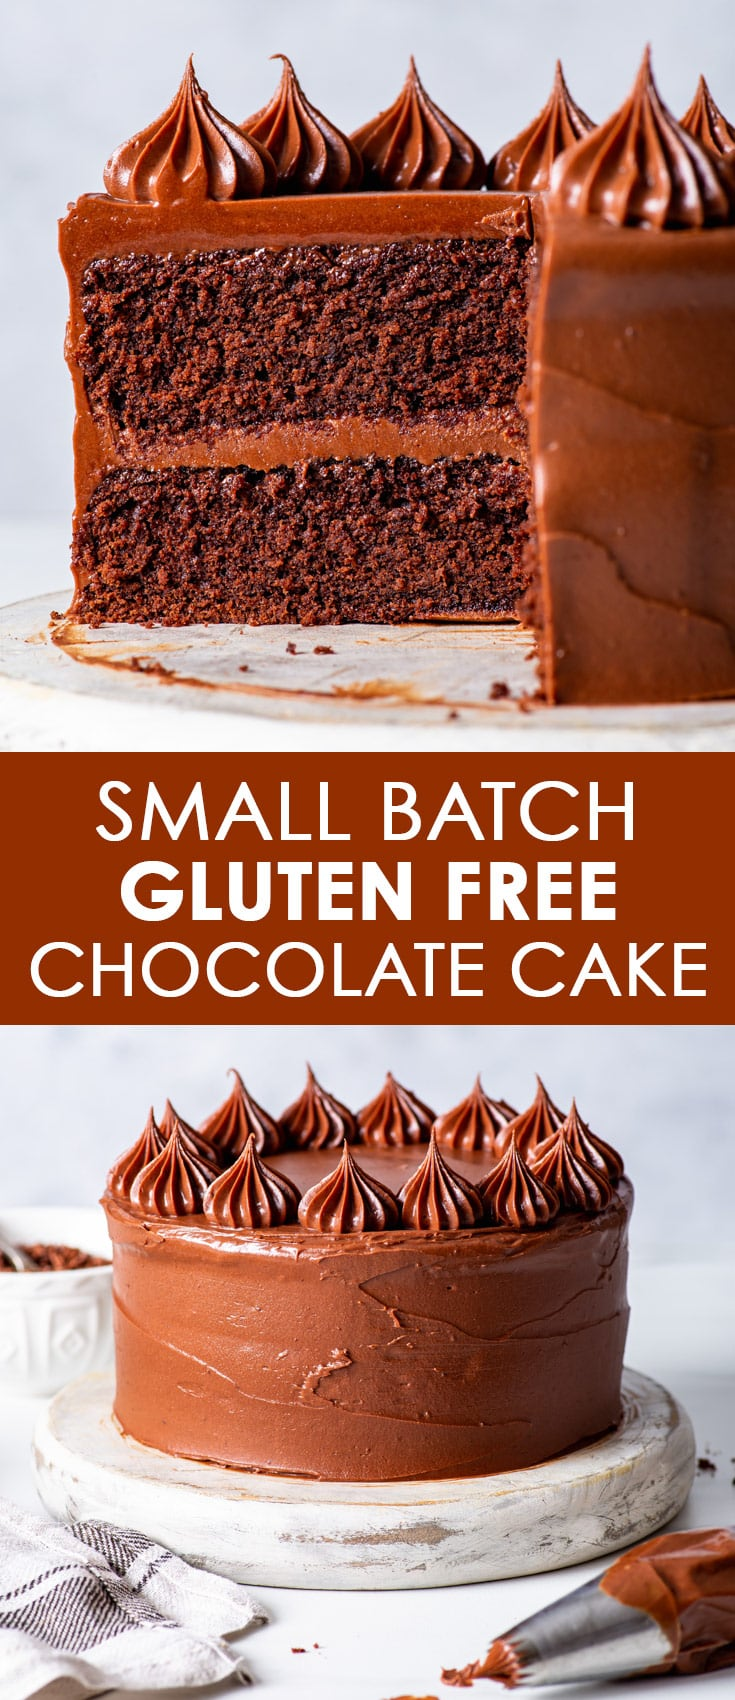 Pinterest image for small batch gluten free chocolate cake.